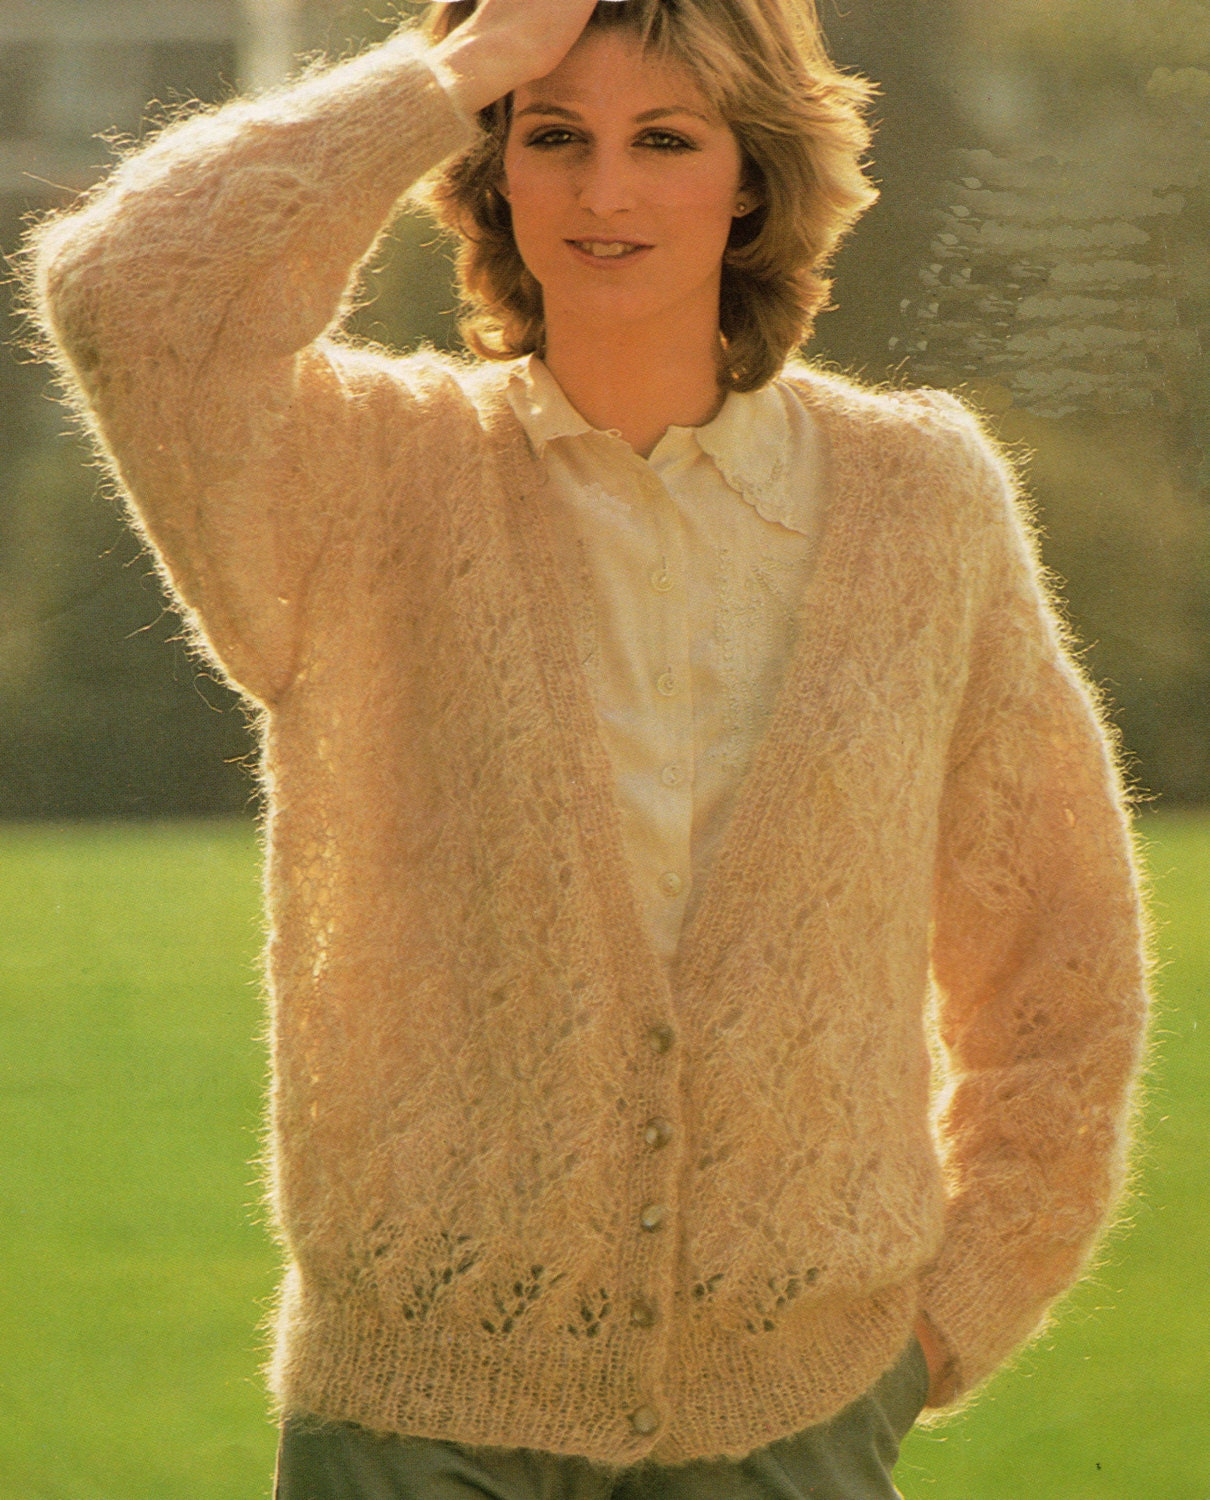 Knitting Pattern Sweater Lace : Ladies Knitting Pattern V Neck Lace Stitch Cardigan 34-36